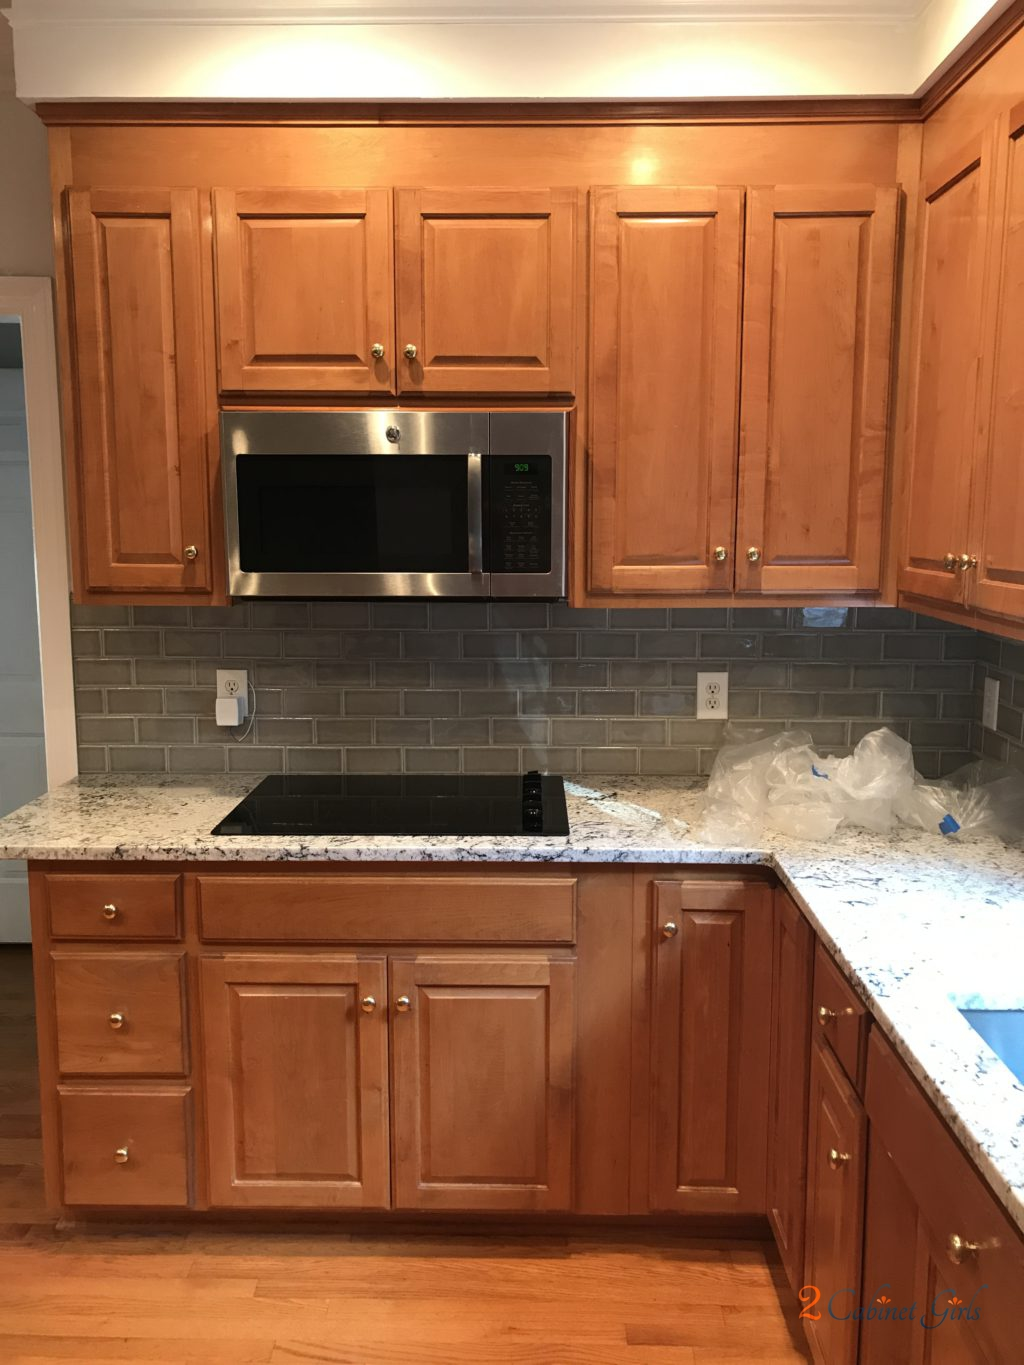 how much are new kitchen cabinets lighting in extra white / gray matters island - 2 cabinet girls